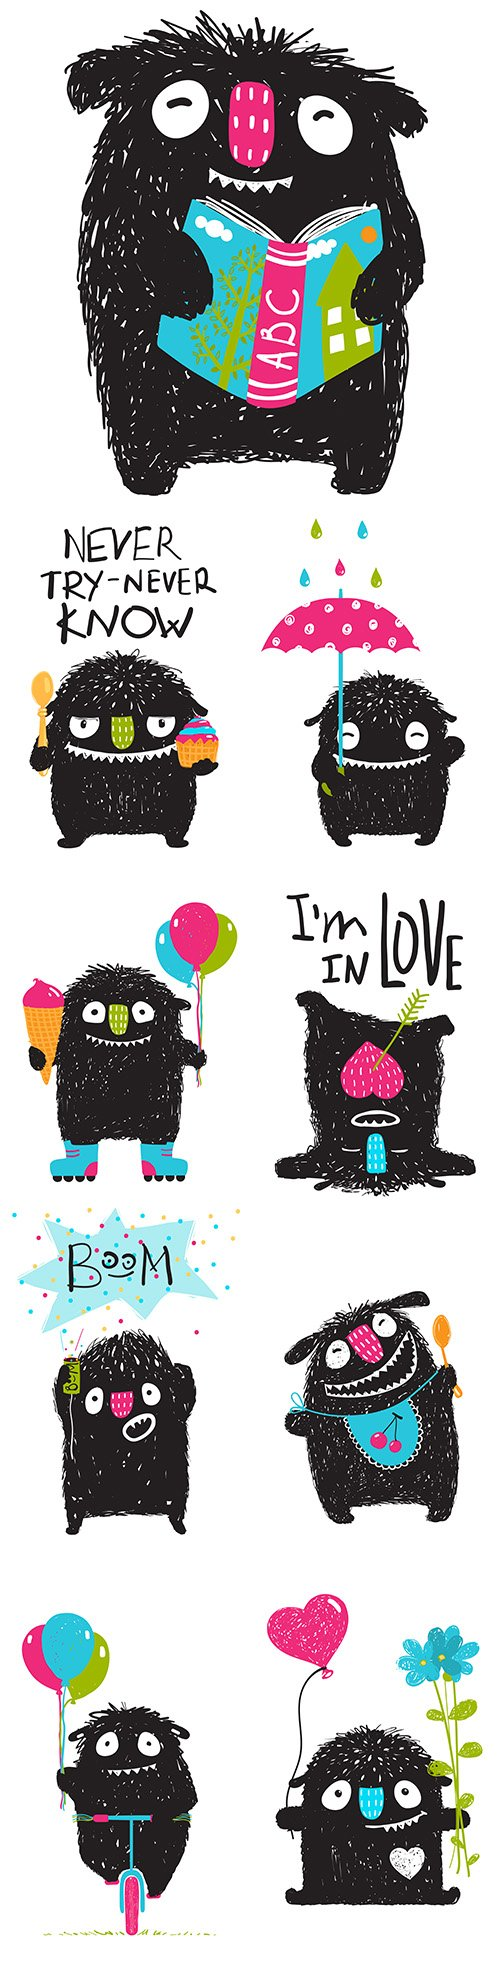 Funny monster with flowers and hearts illustration for children